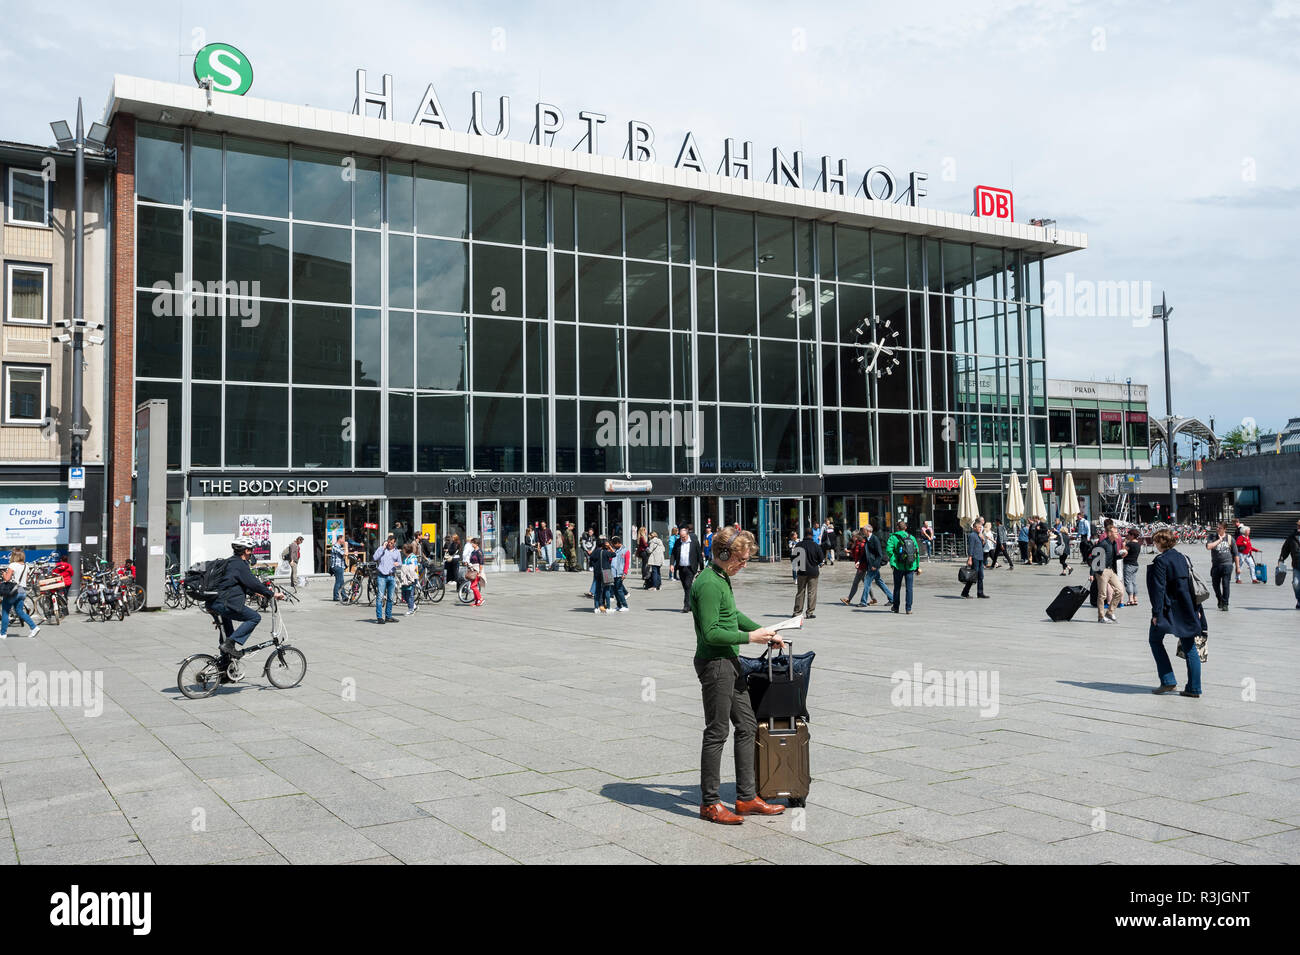 09.06.2017, Cologne, Northrhine-Westphalia, Germany, Europe - People are seen in front of the west entrance of the Cologne main railway station. Stock Photo